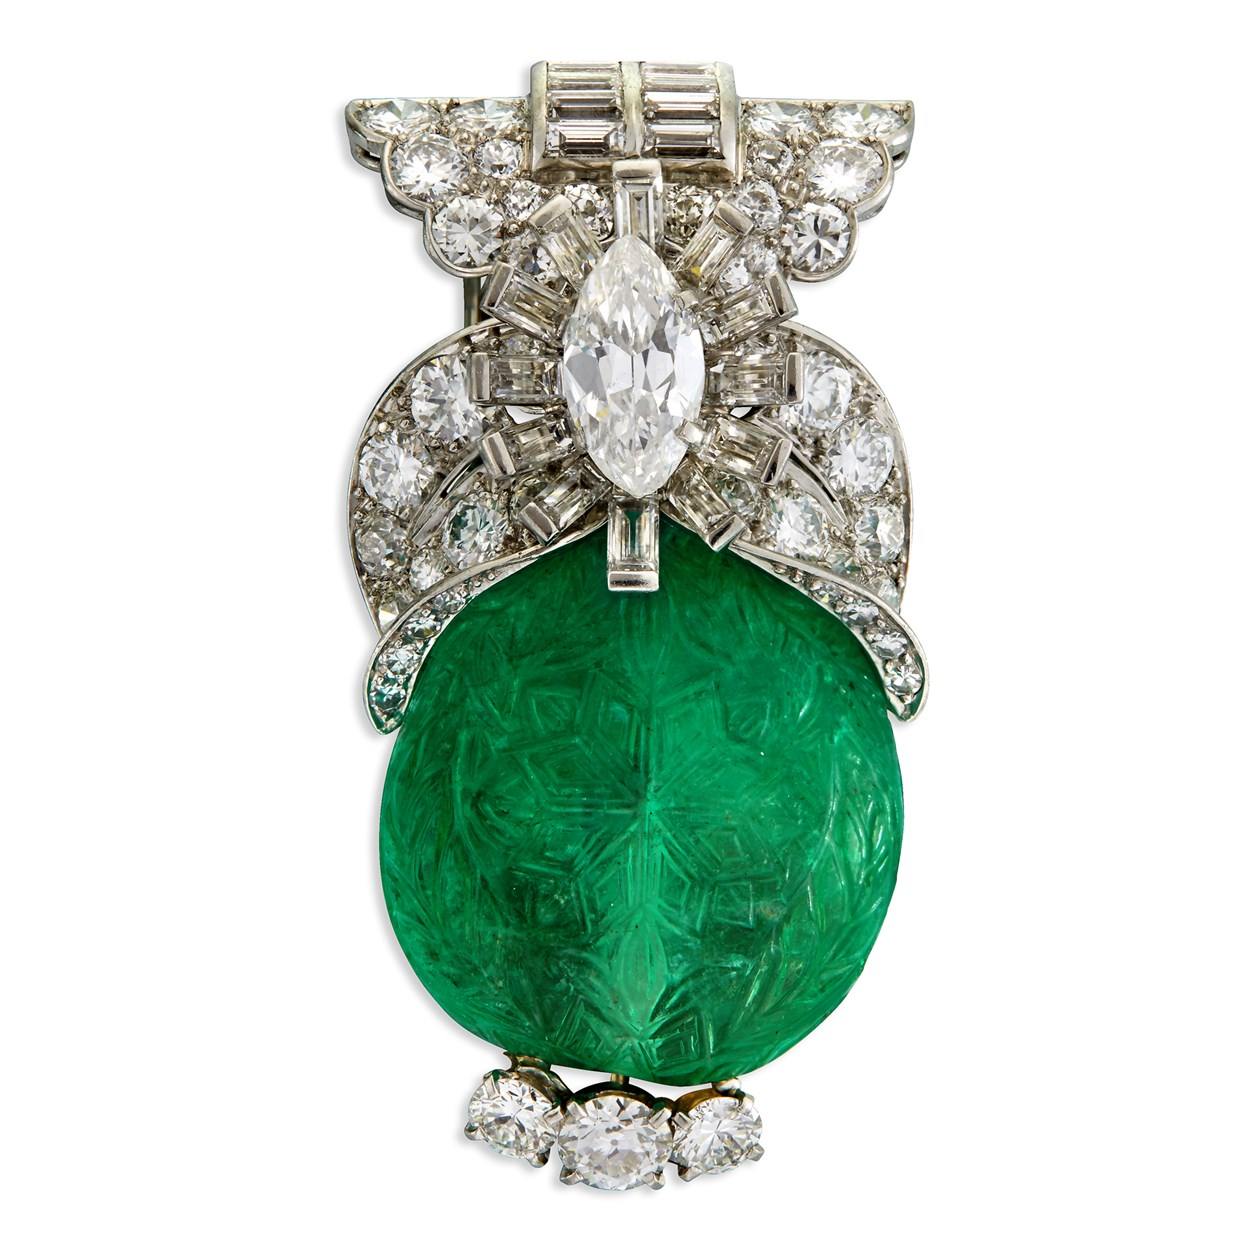 Lot 173 - A carved emerald, diamond, and platinum brooch, Cartier